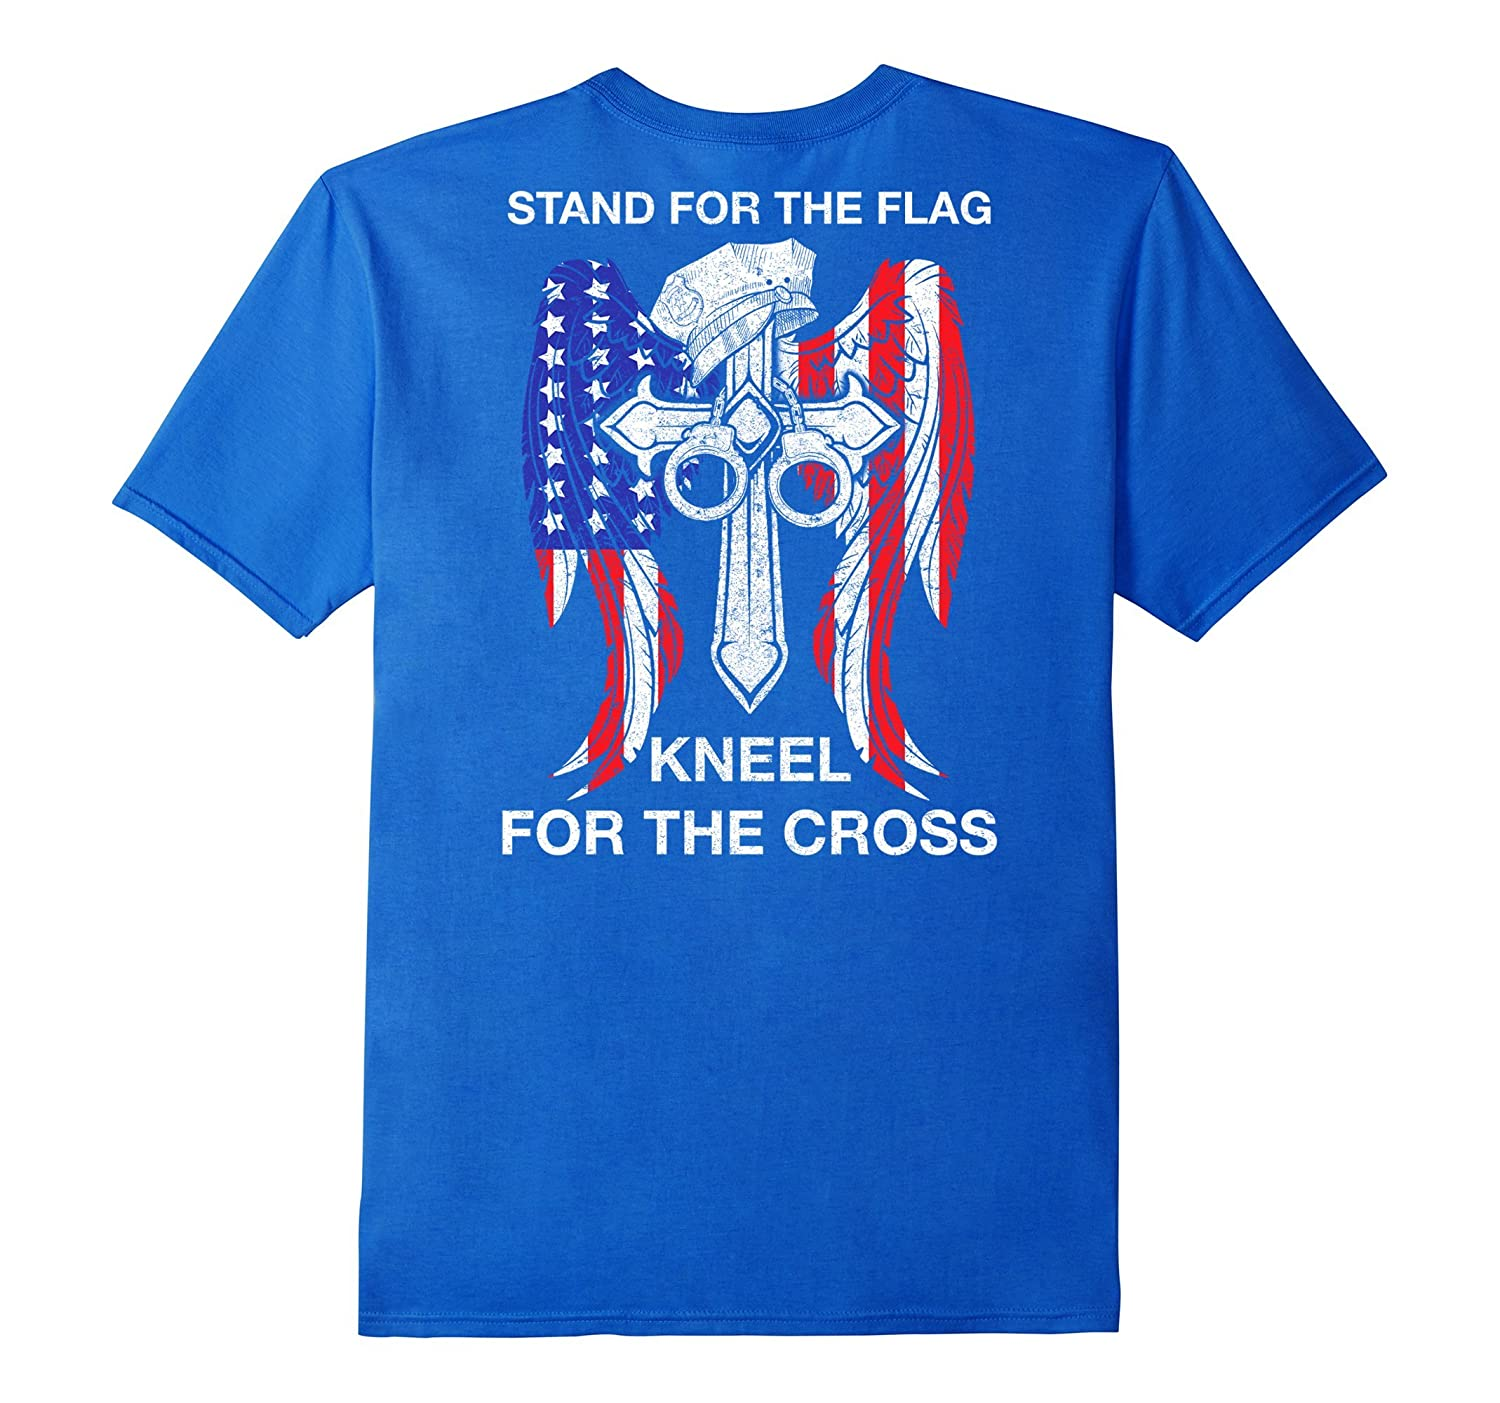 Police Stand For The Flag Kneel For The Cross Shirt